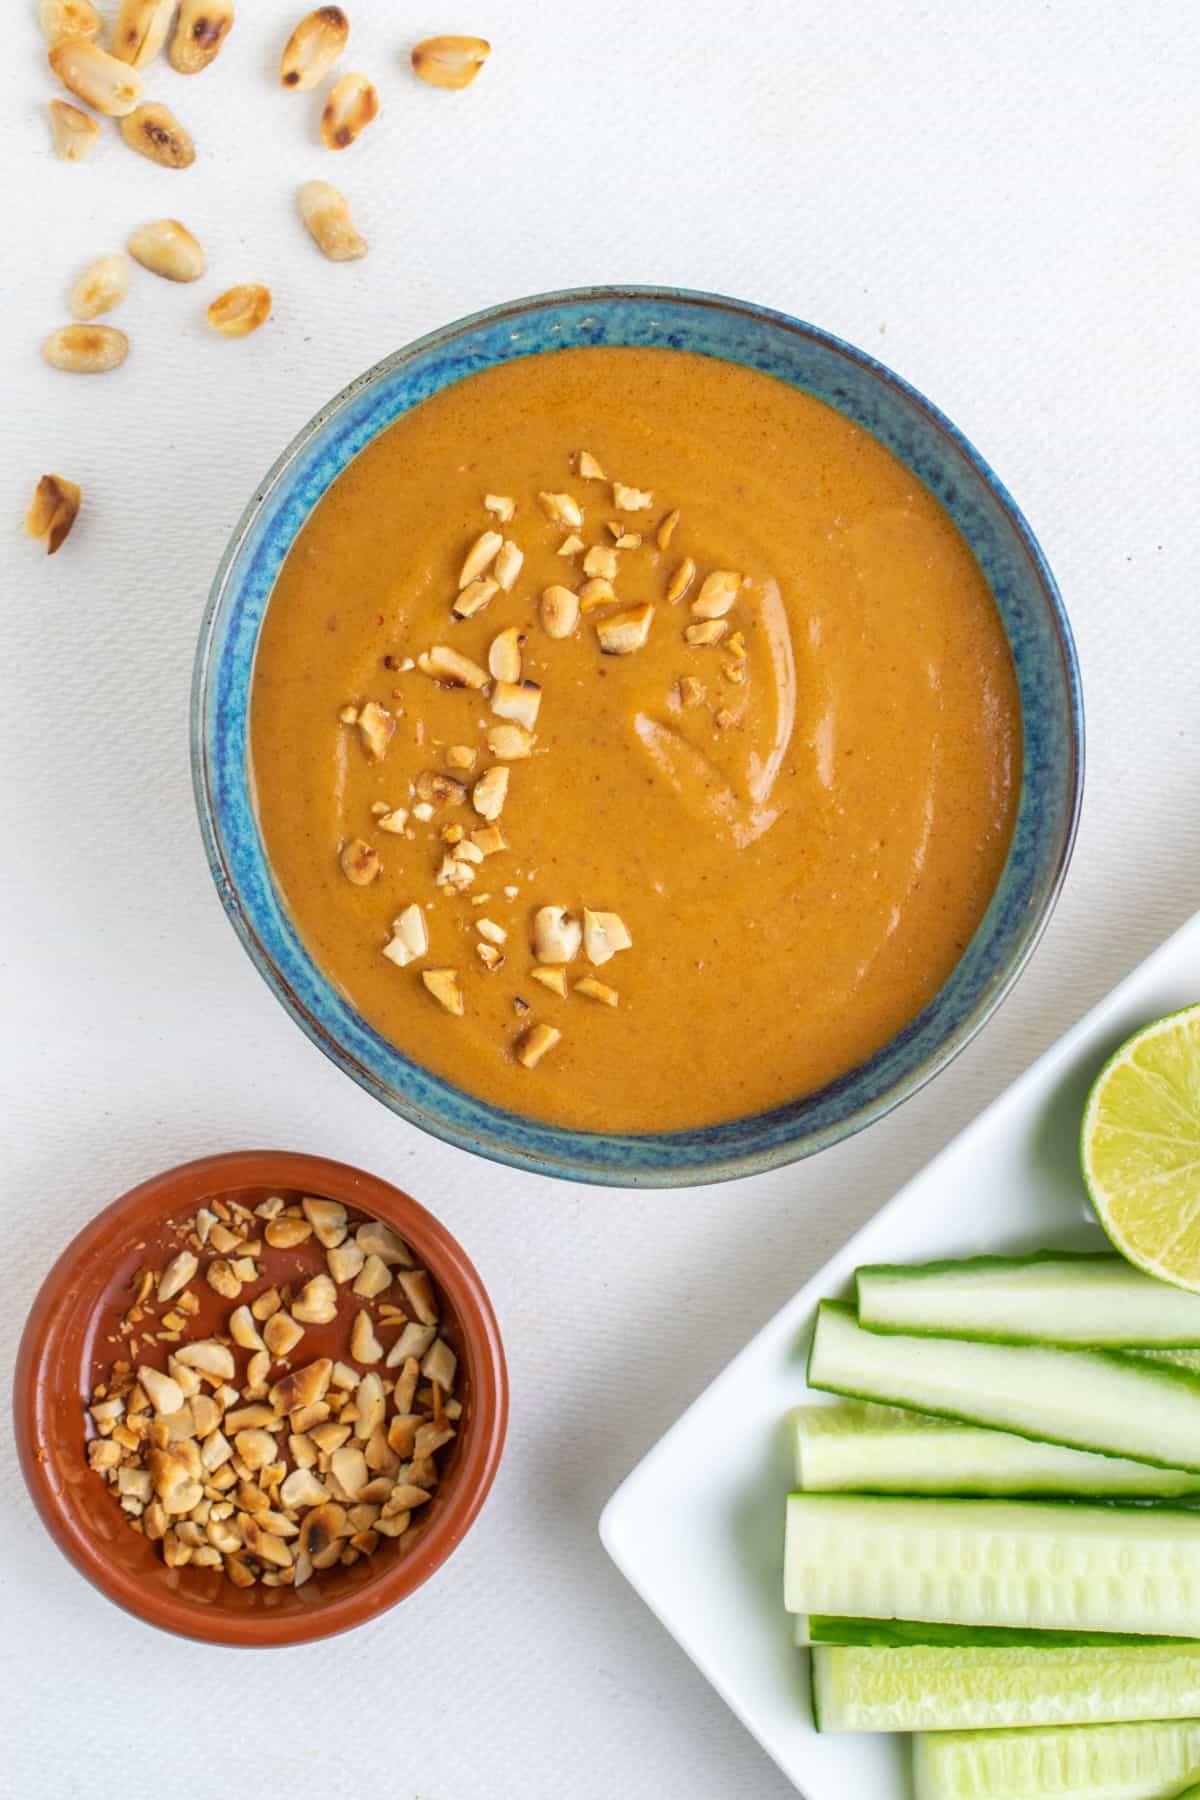 A blue pottery bowl full od Thai inspired peanut sauce, next to a dish of crushed peanuts.